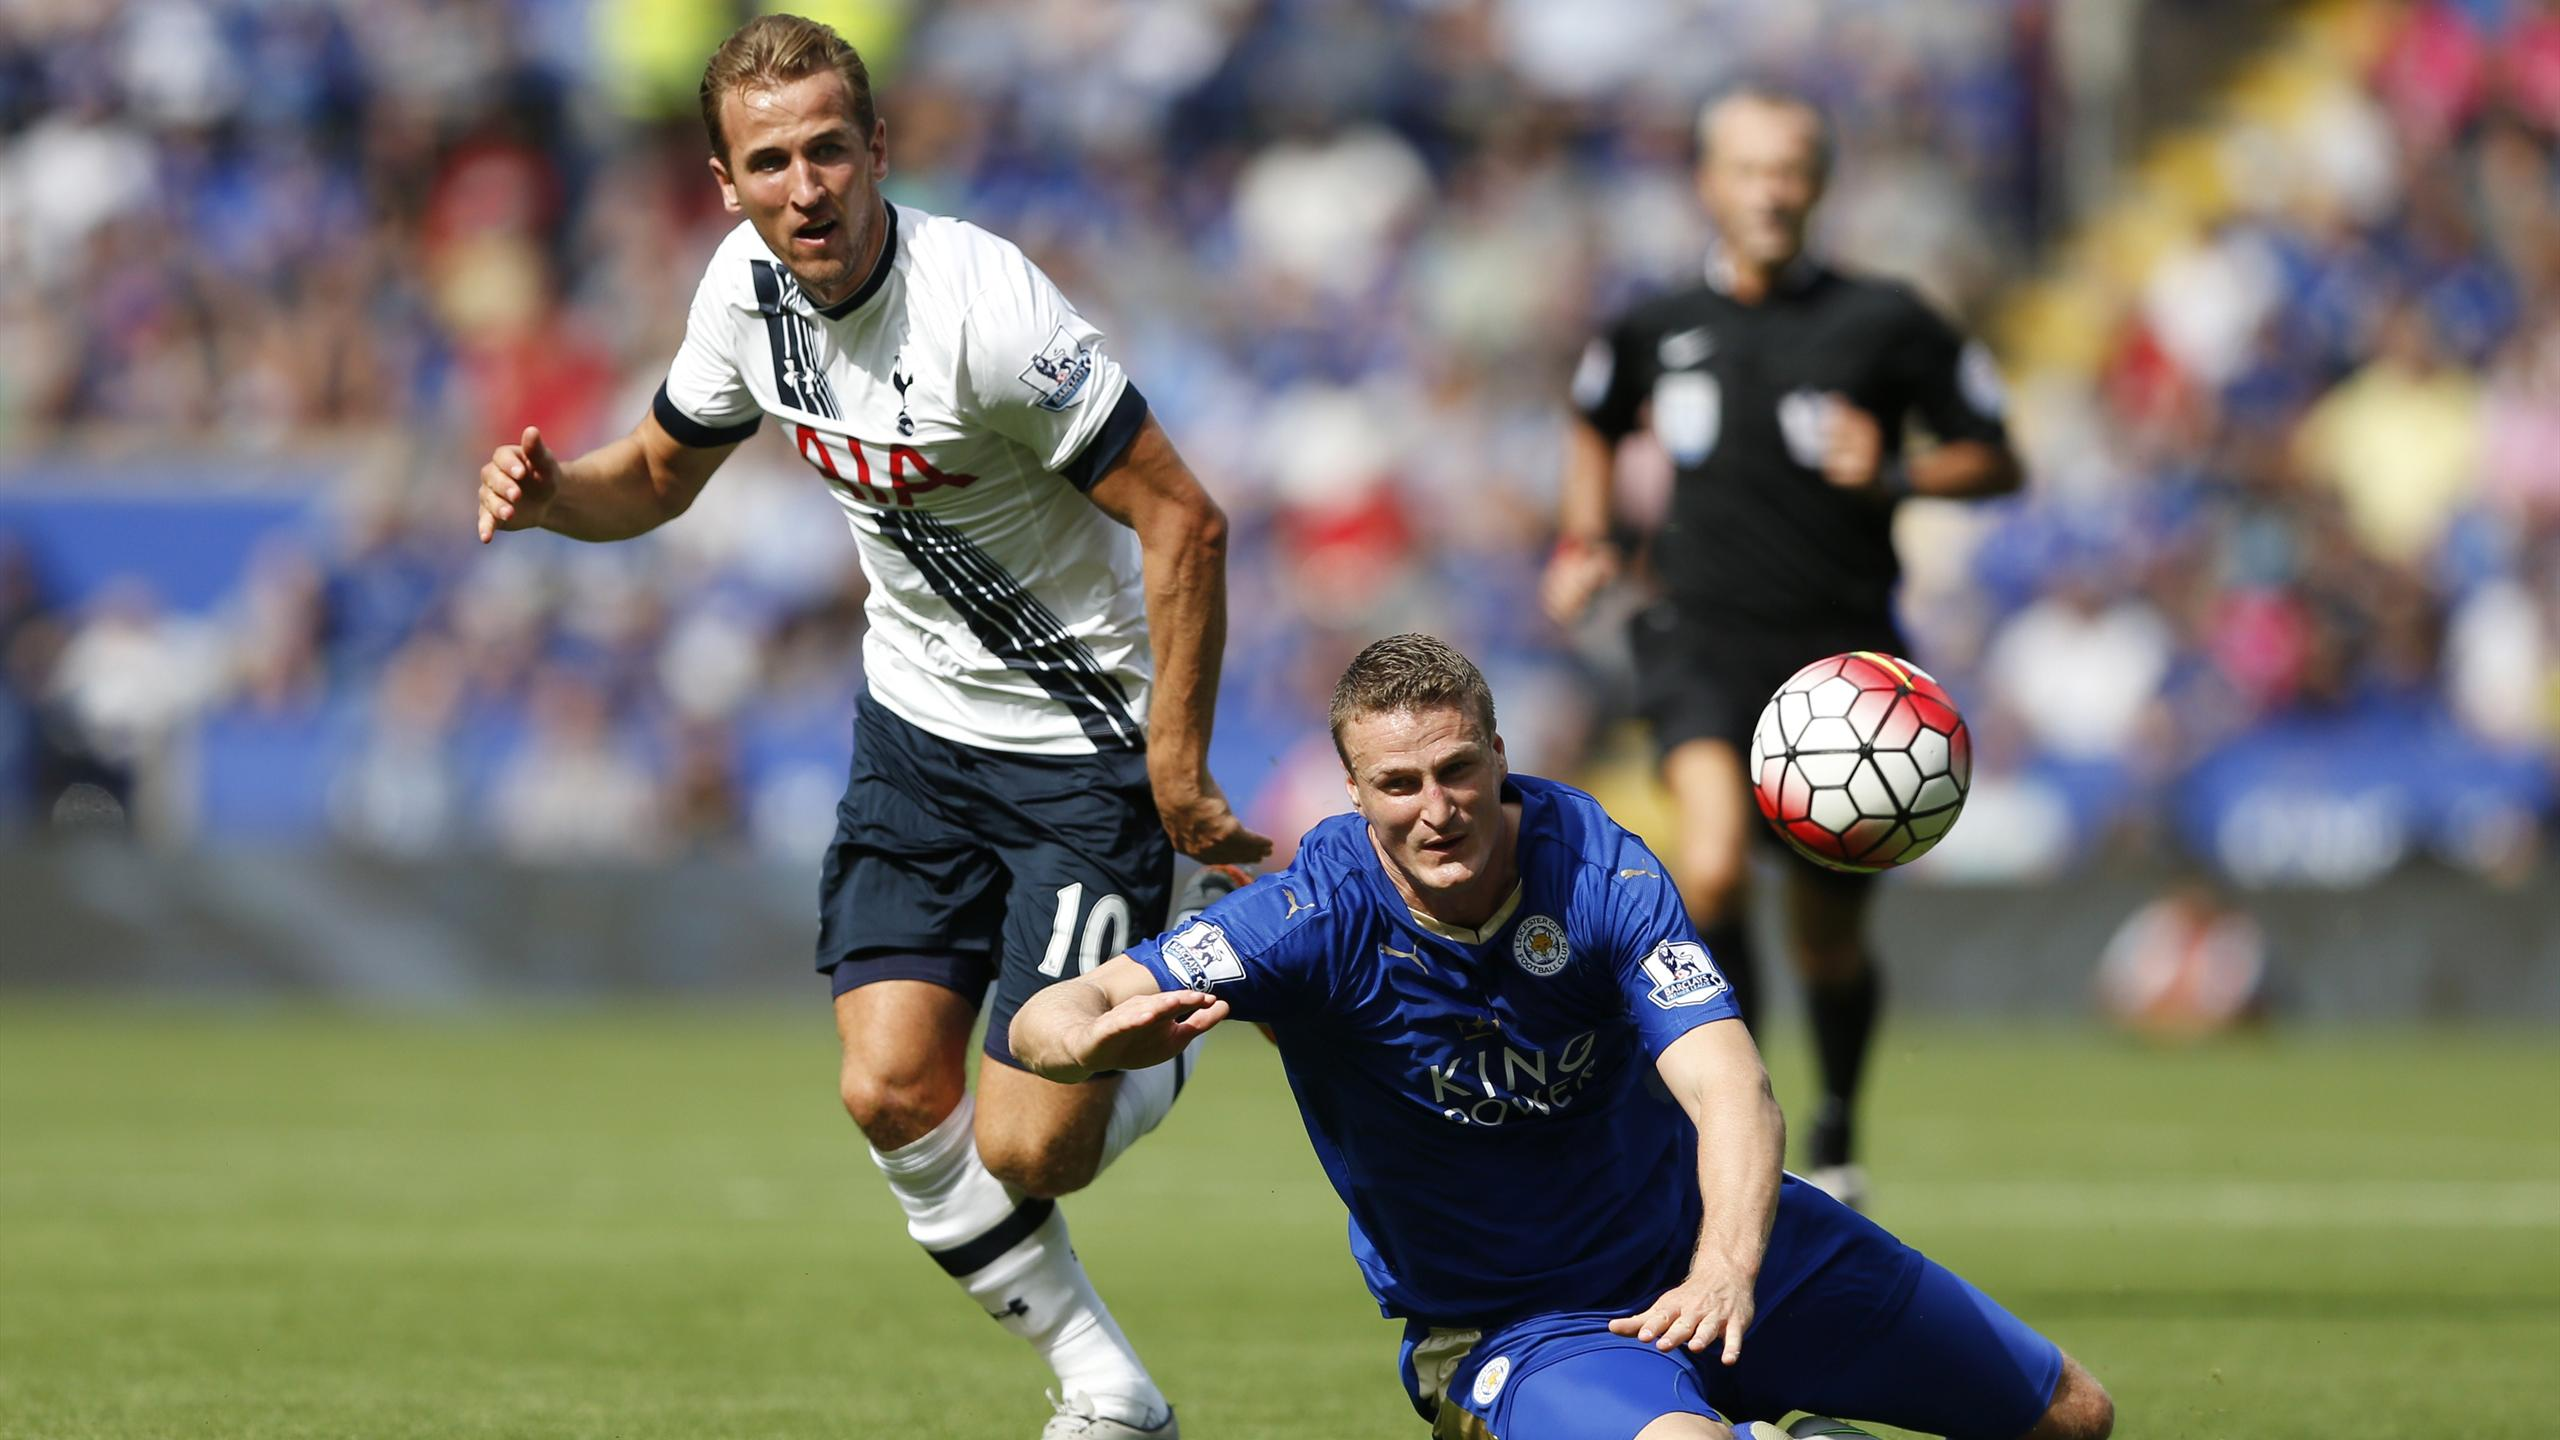 Leicester's Robert Huth in action with Tottenham Hotspur's Harry Kane